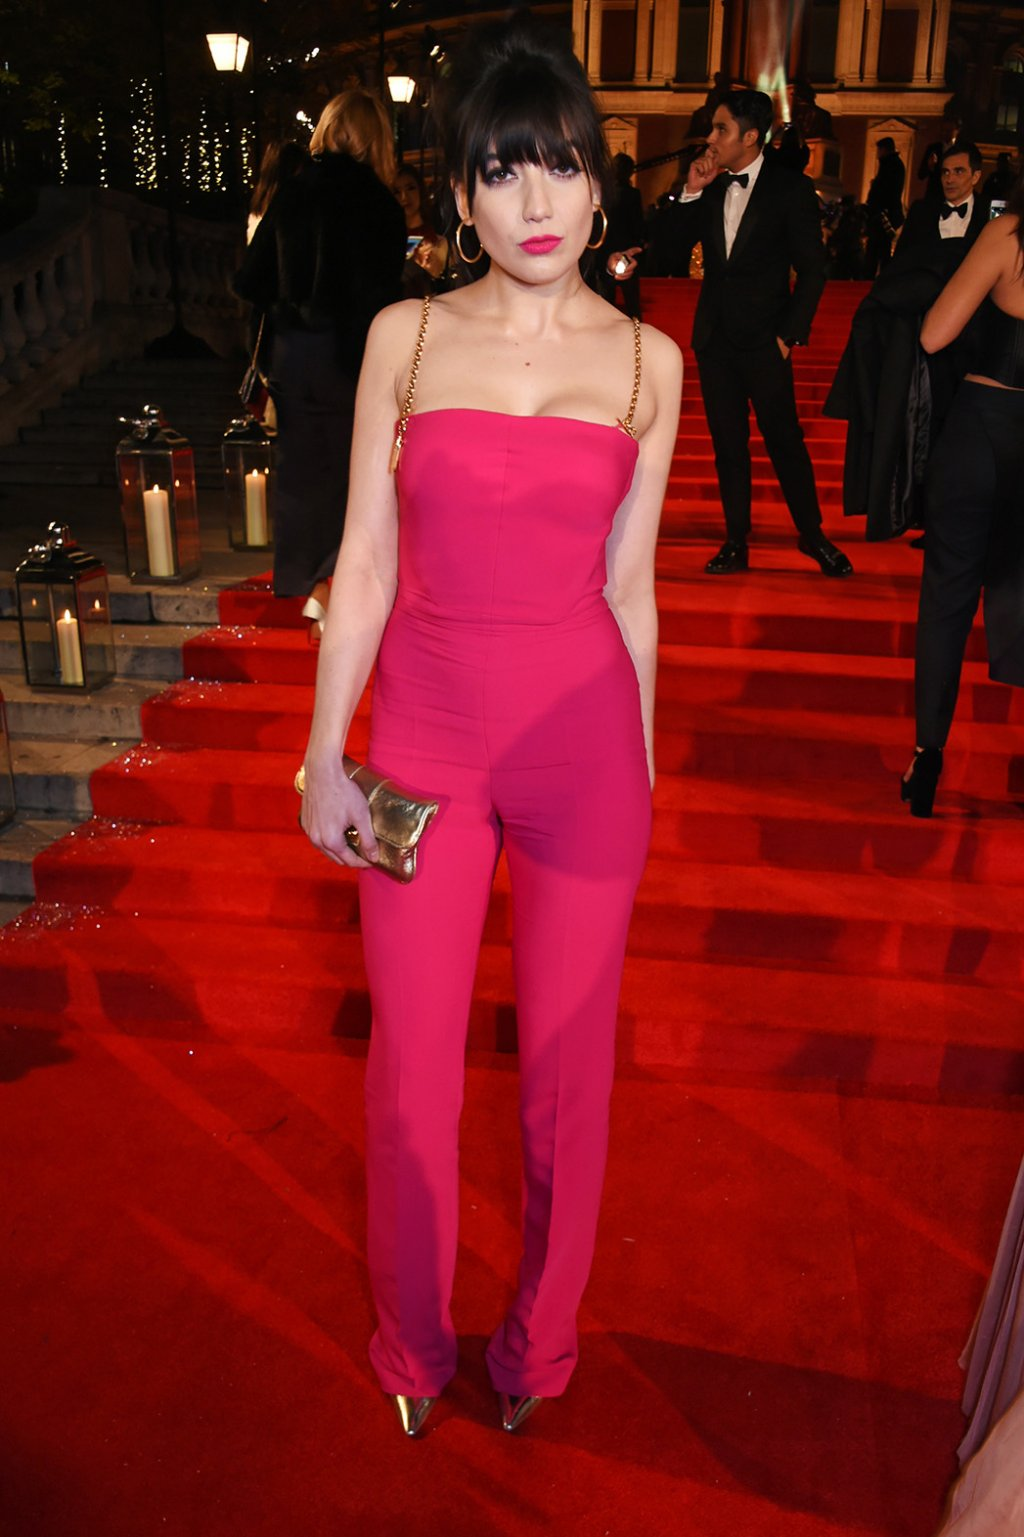 Fashion model Daisy Lowe in a pink jumpsuit